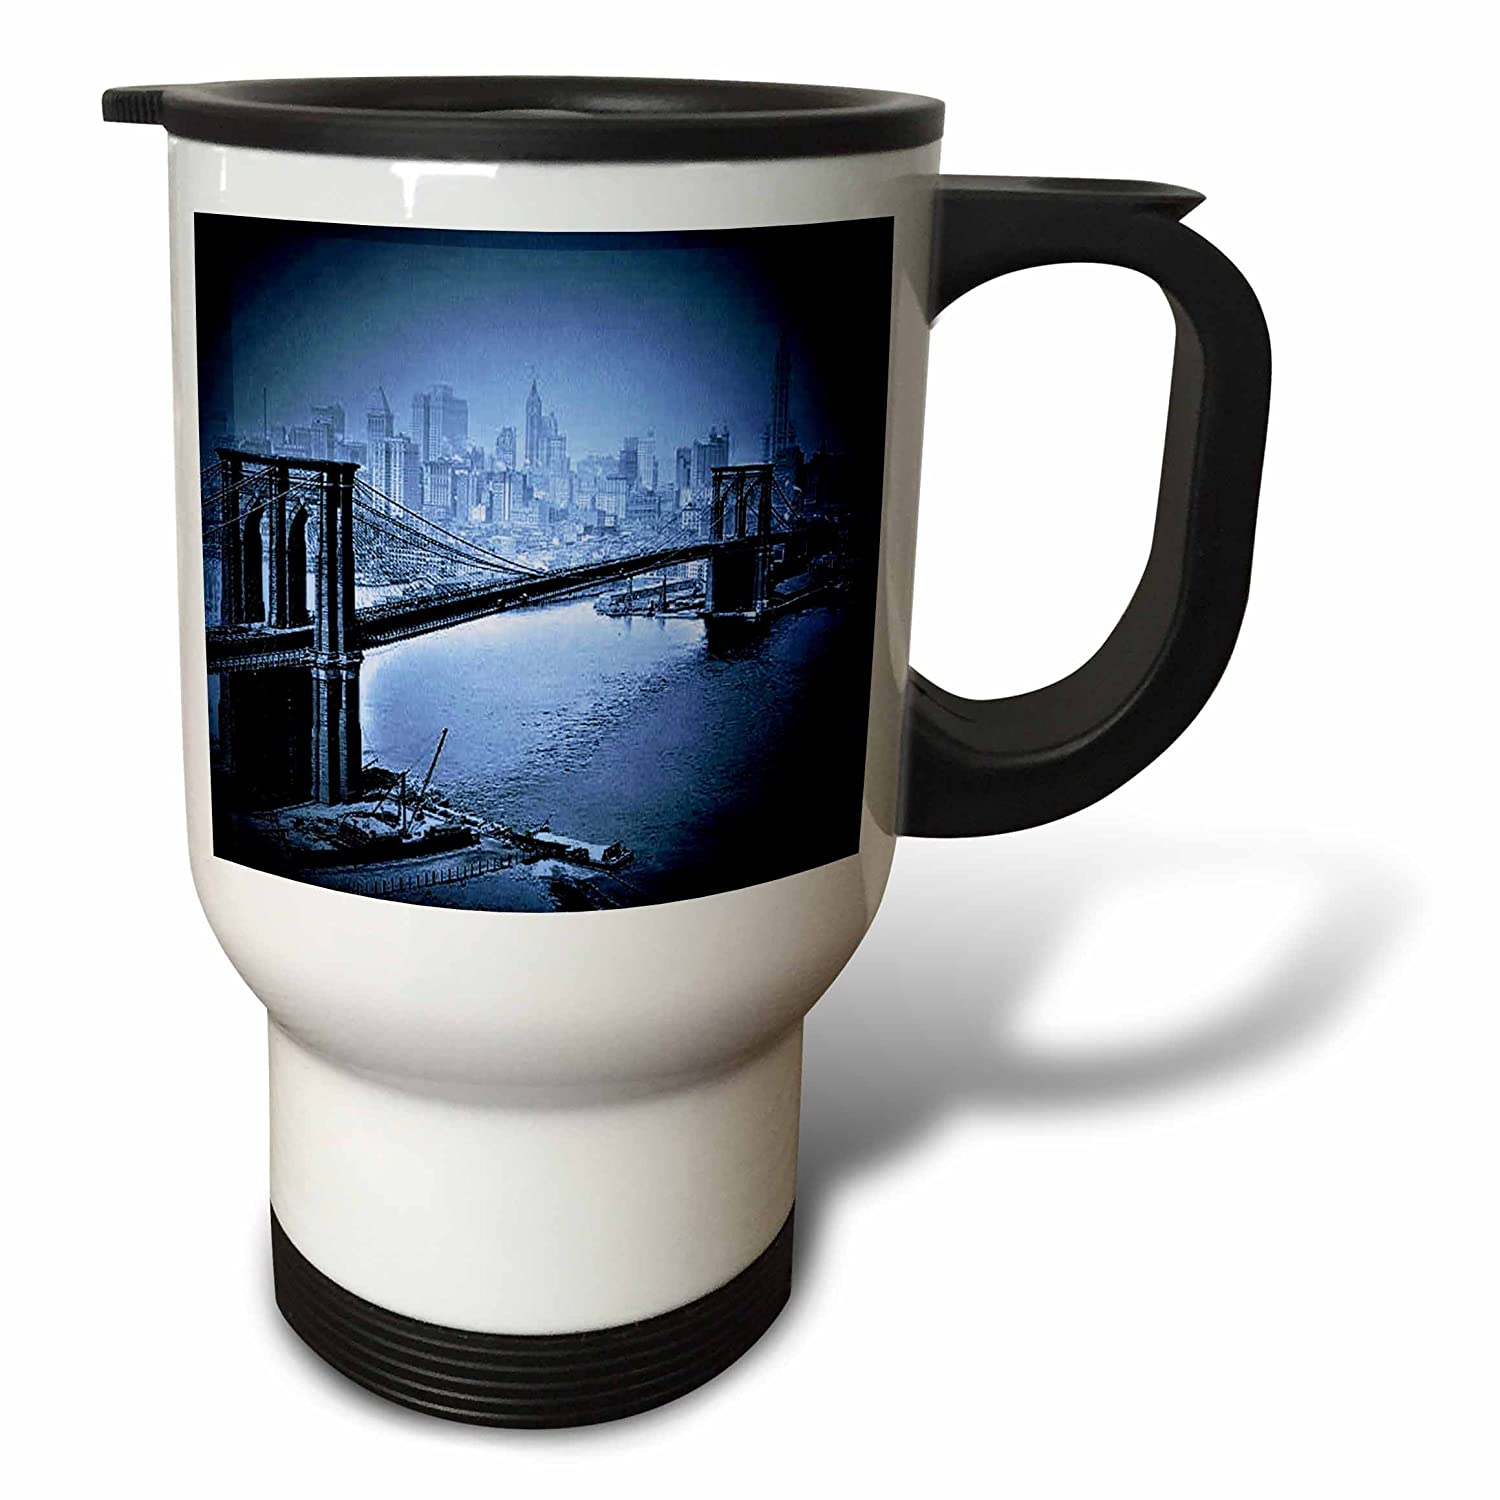 Buy 3drose Golden Gate Bridge San Francisco Line Art Travel Mug 14 Ounce Stainless Steel Online At Low Prices In India Amazon In